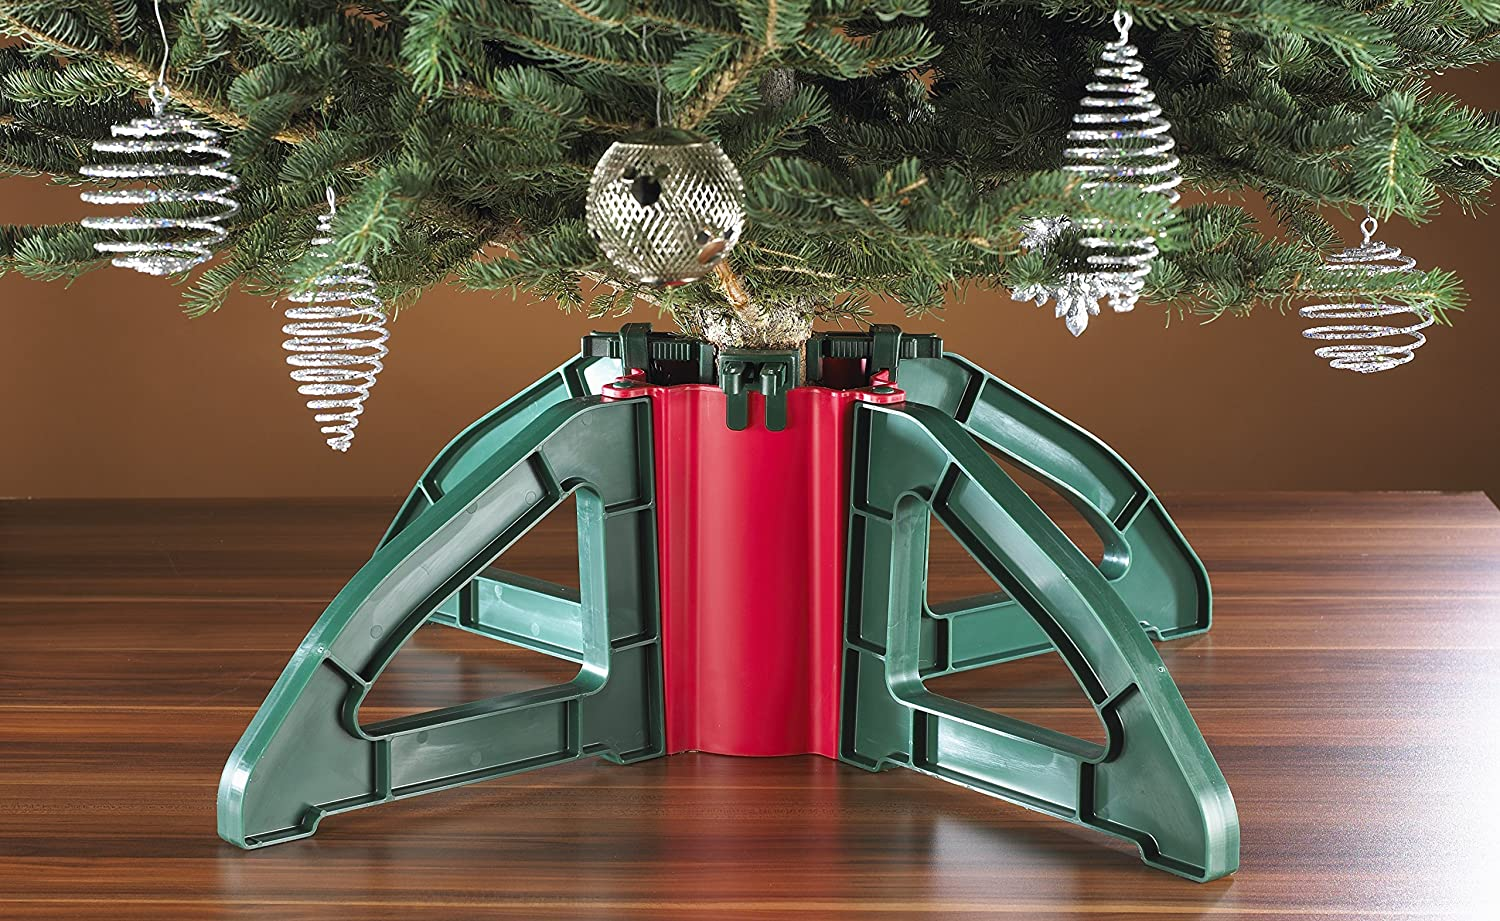 Amazon.com: Omega Christmas Tree Stand- No Screws |Unbreakable Nylon ...